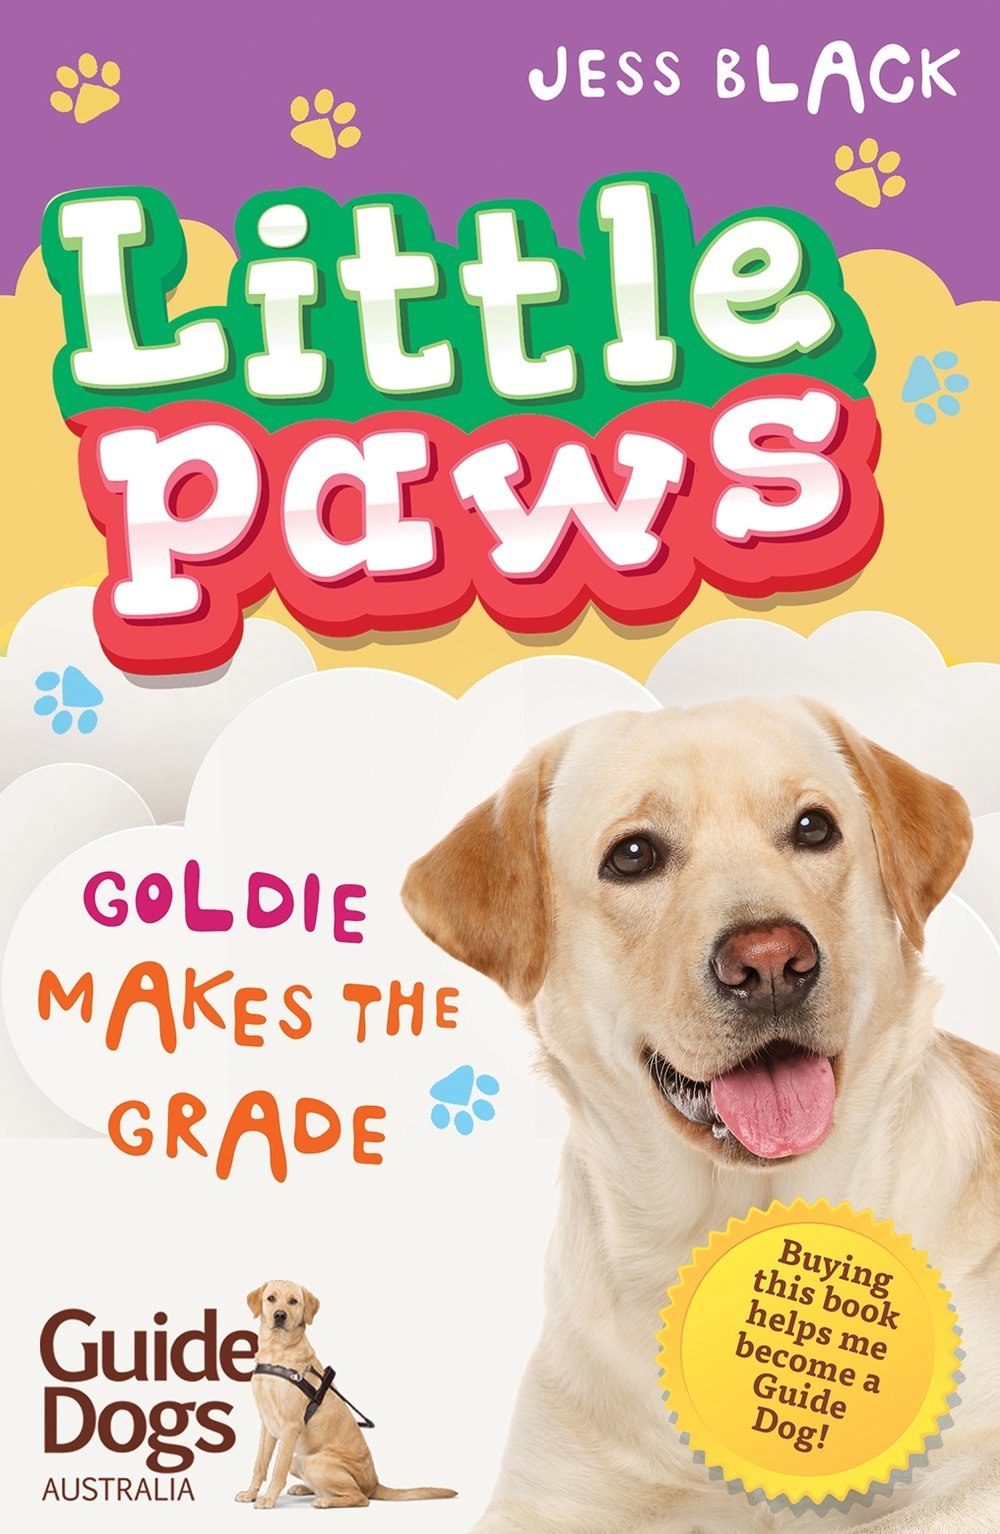 Guide Dog puppy Goldie has been with the Agresta family since she was eight weeks old. Now she's nearly fourteen months and it's almost time for her to leave and begin her final Guide Dog training. Abby is so proud of Goldie and is determined to make the most of the time they have left together. But when some cupcakes that Abby's mum has made for the school charity day go missing, it looks like Goldie is the most likely culprit! Can Abby clear Goldie's good name?